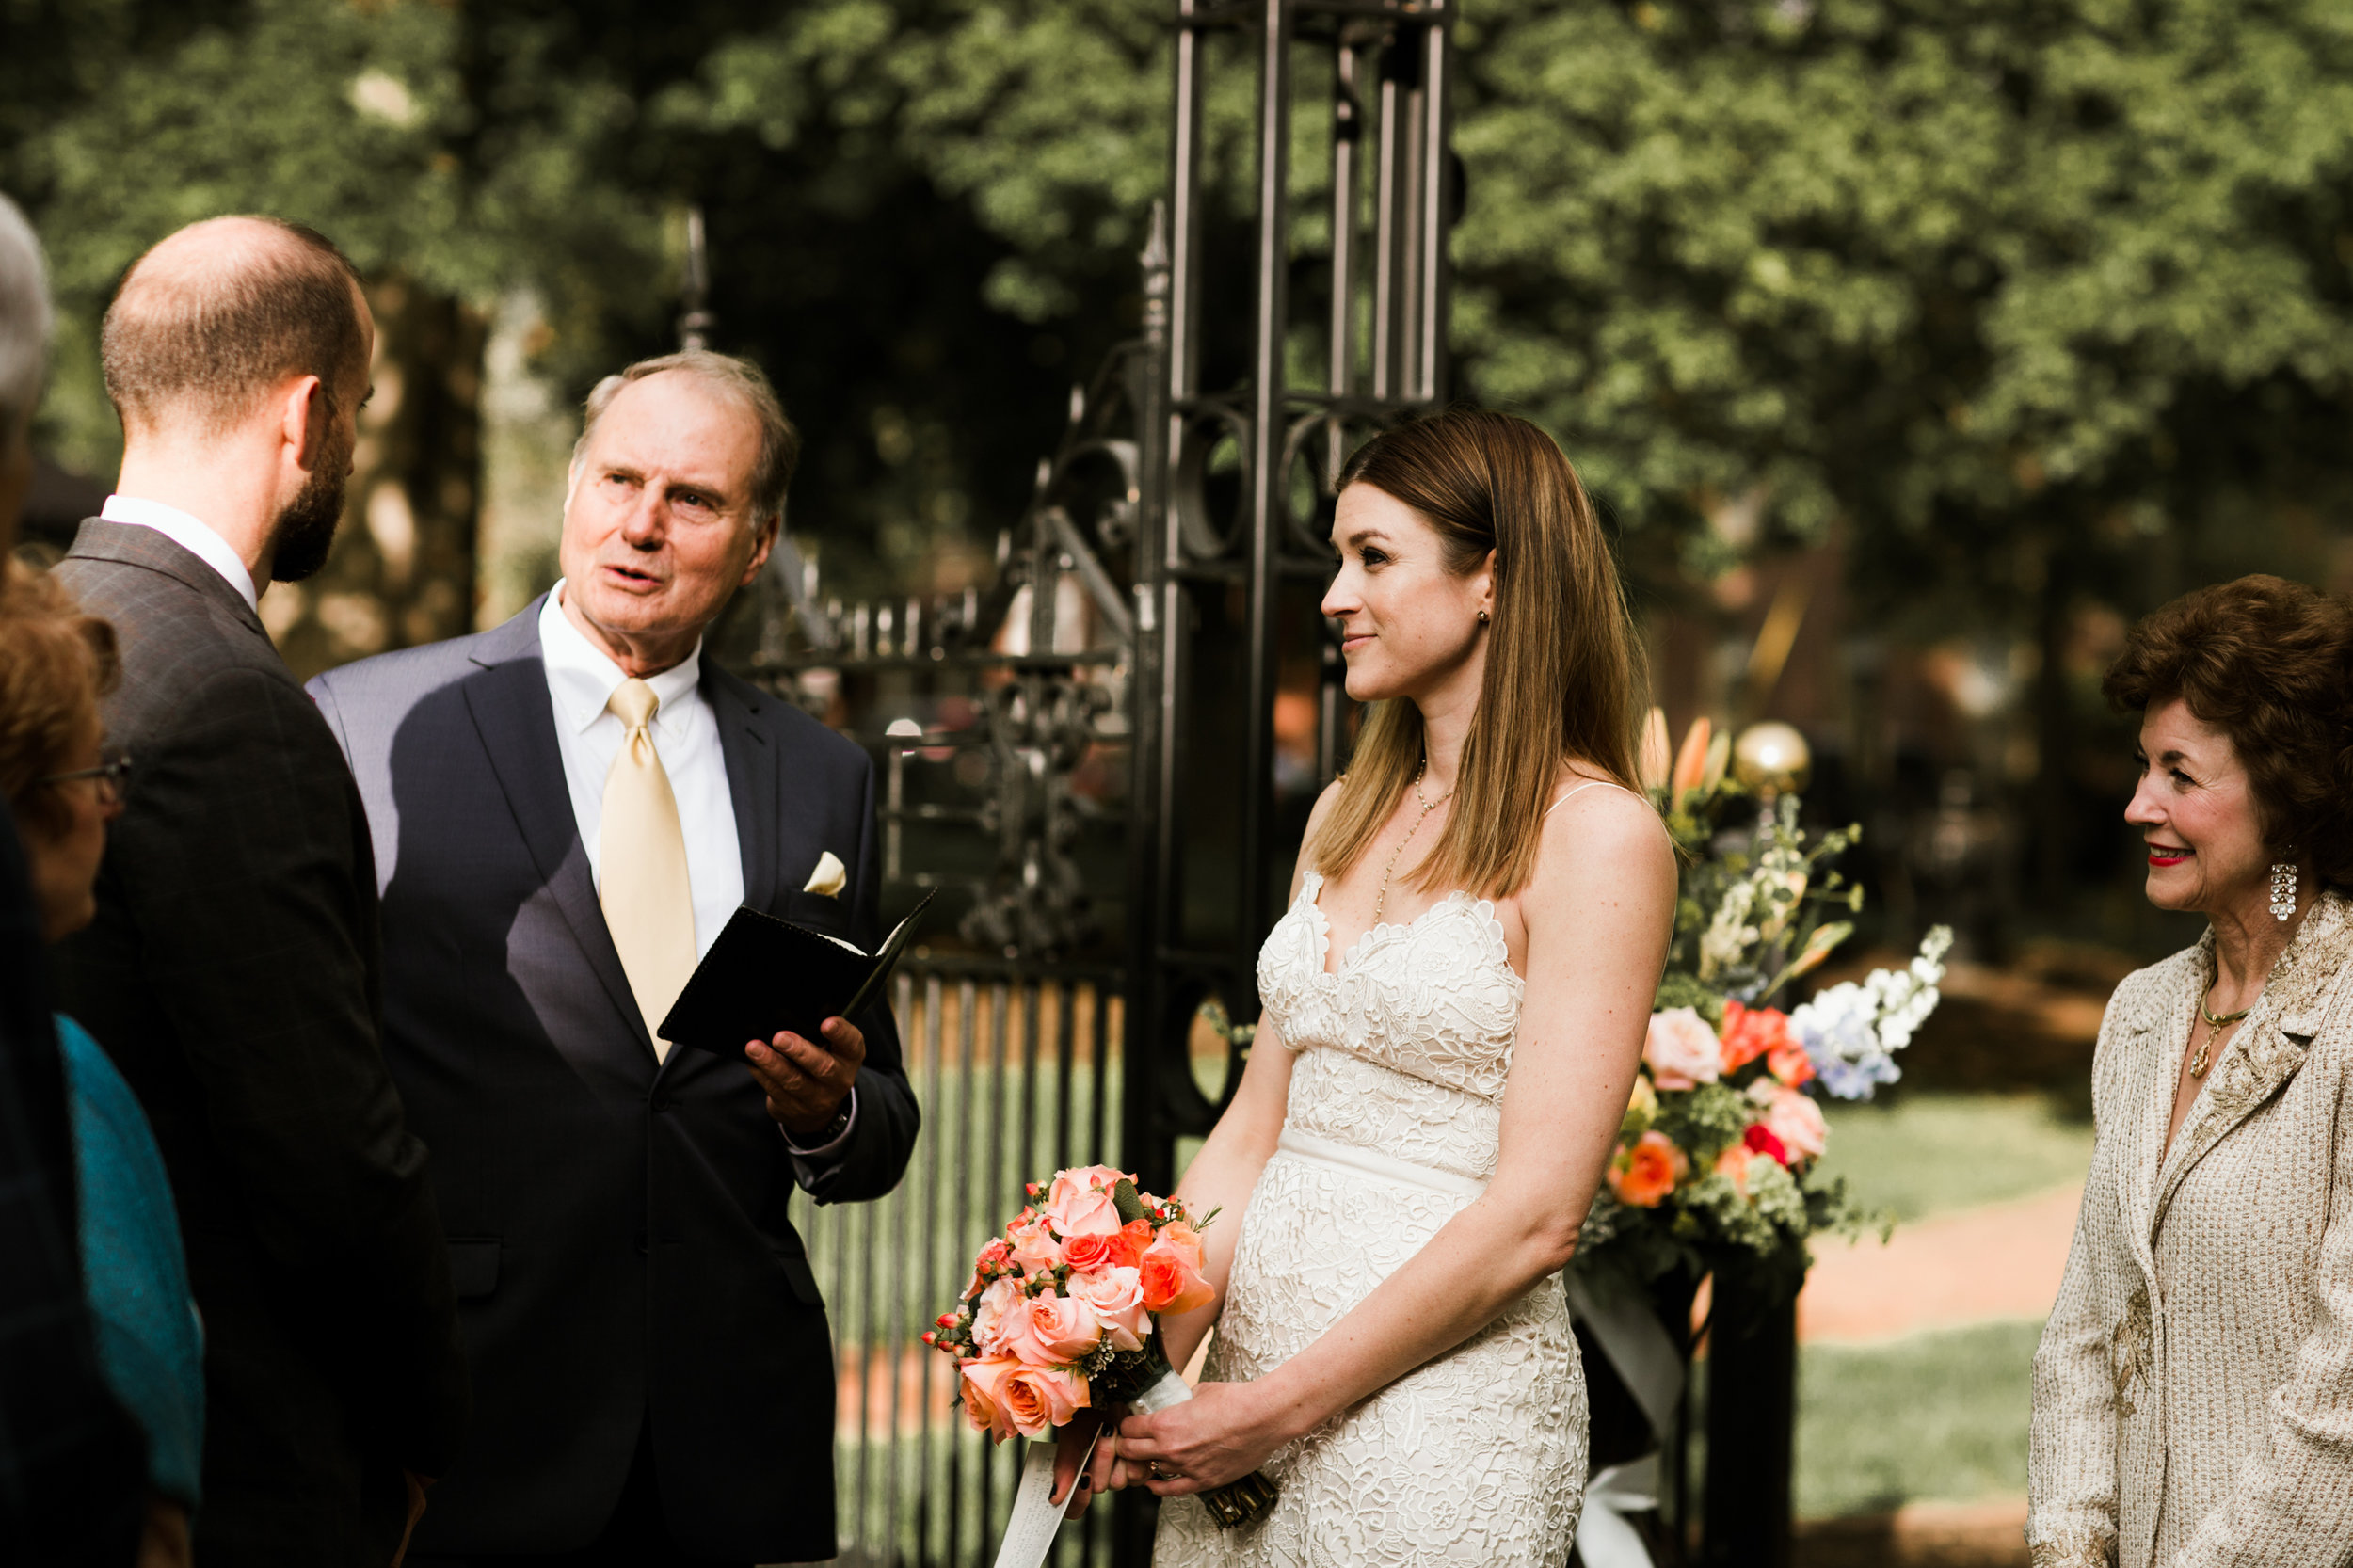 Louisville Courthouse Wedding Louisville Wedding Photographer 2018 Crystal Ludwick Photo Louisville Wedding Photographer Kentucky Wedding Photographer (40 of 76).jpg